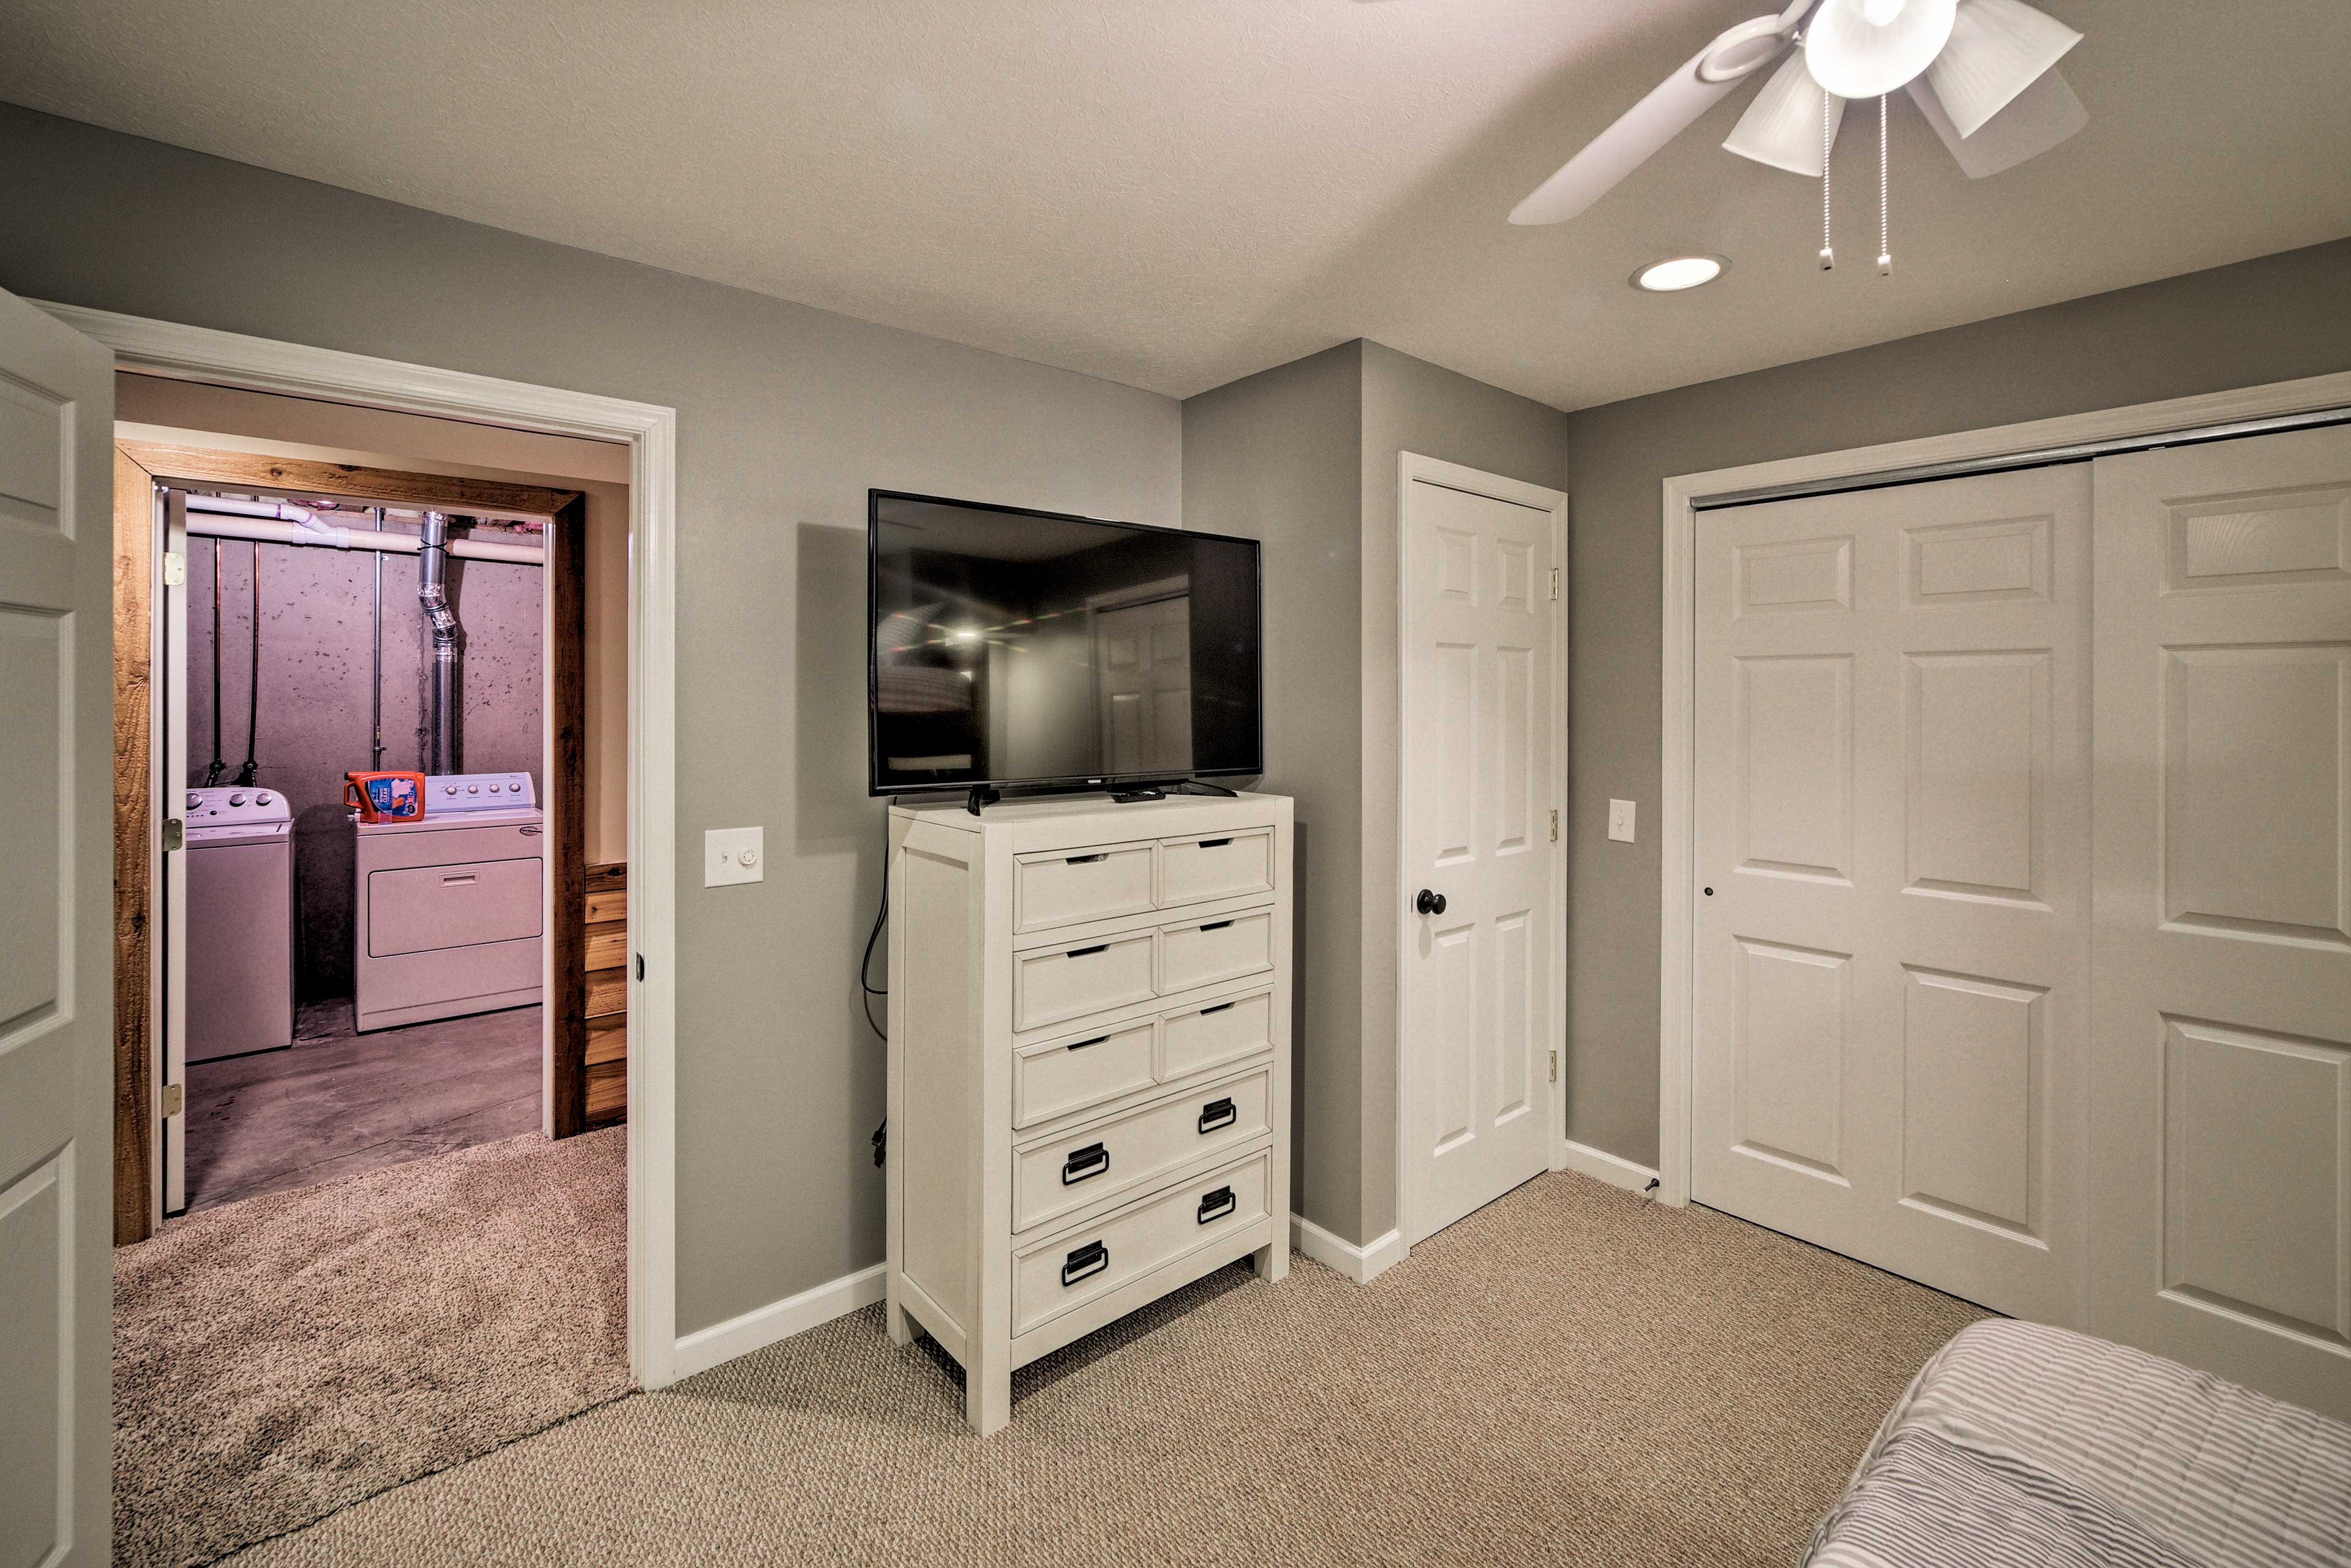 Smart TVs are located in every bedroom.